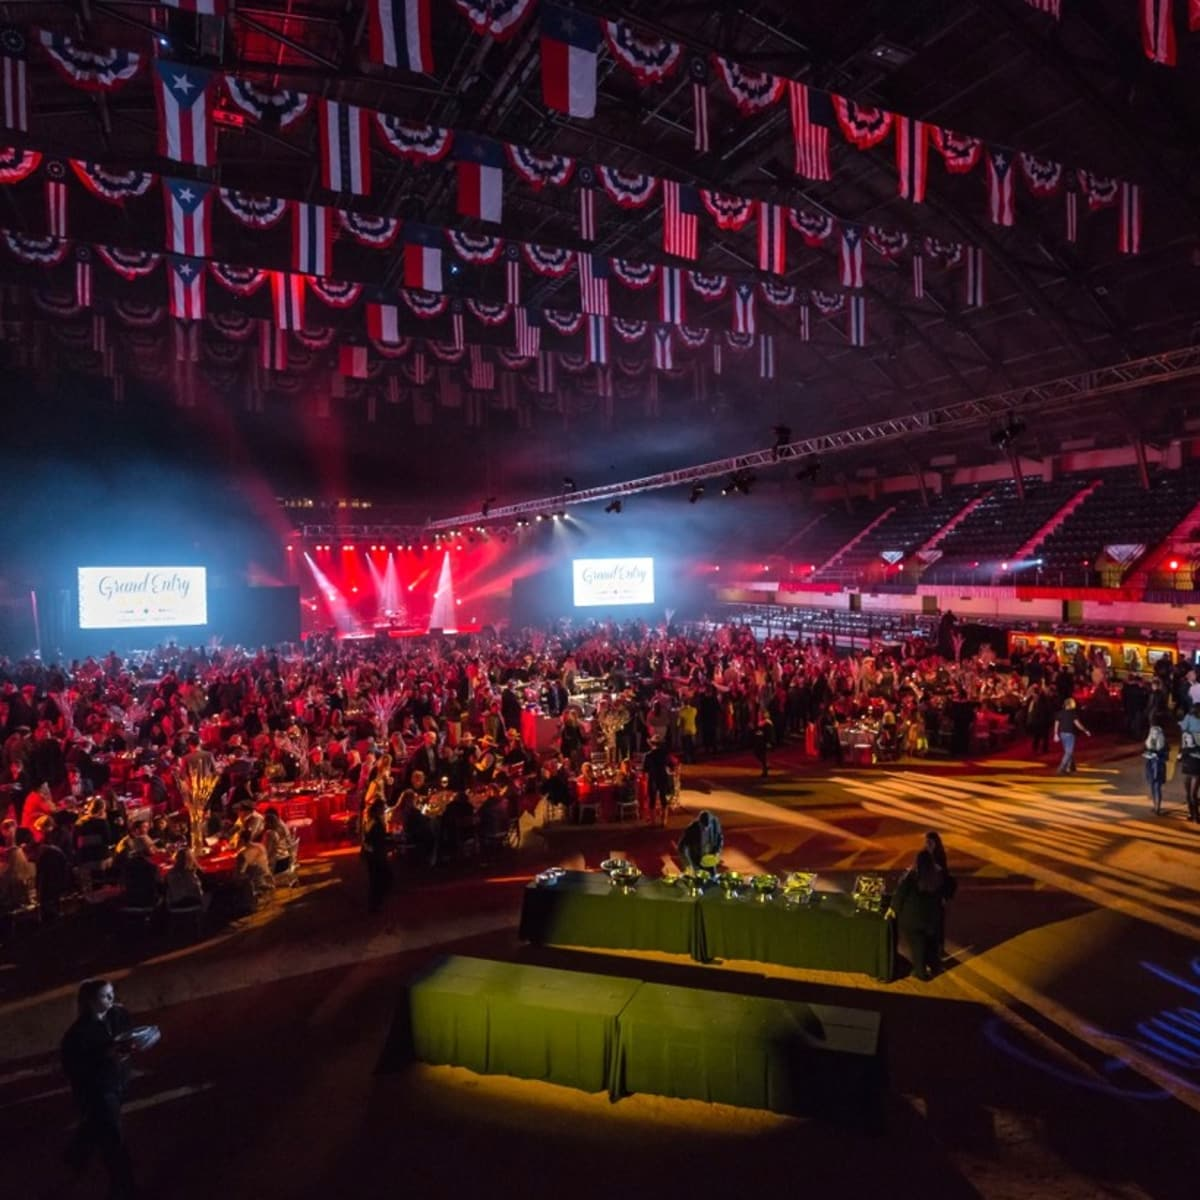 Fort Worth, JLH Grand Entry Gala, January 2018, crowd